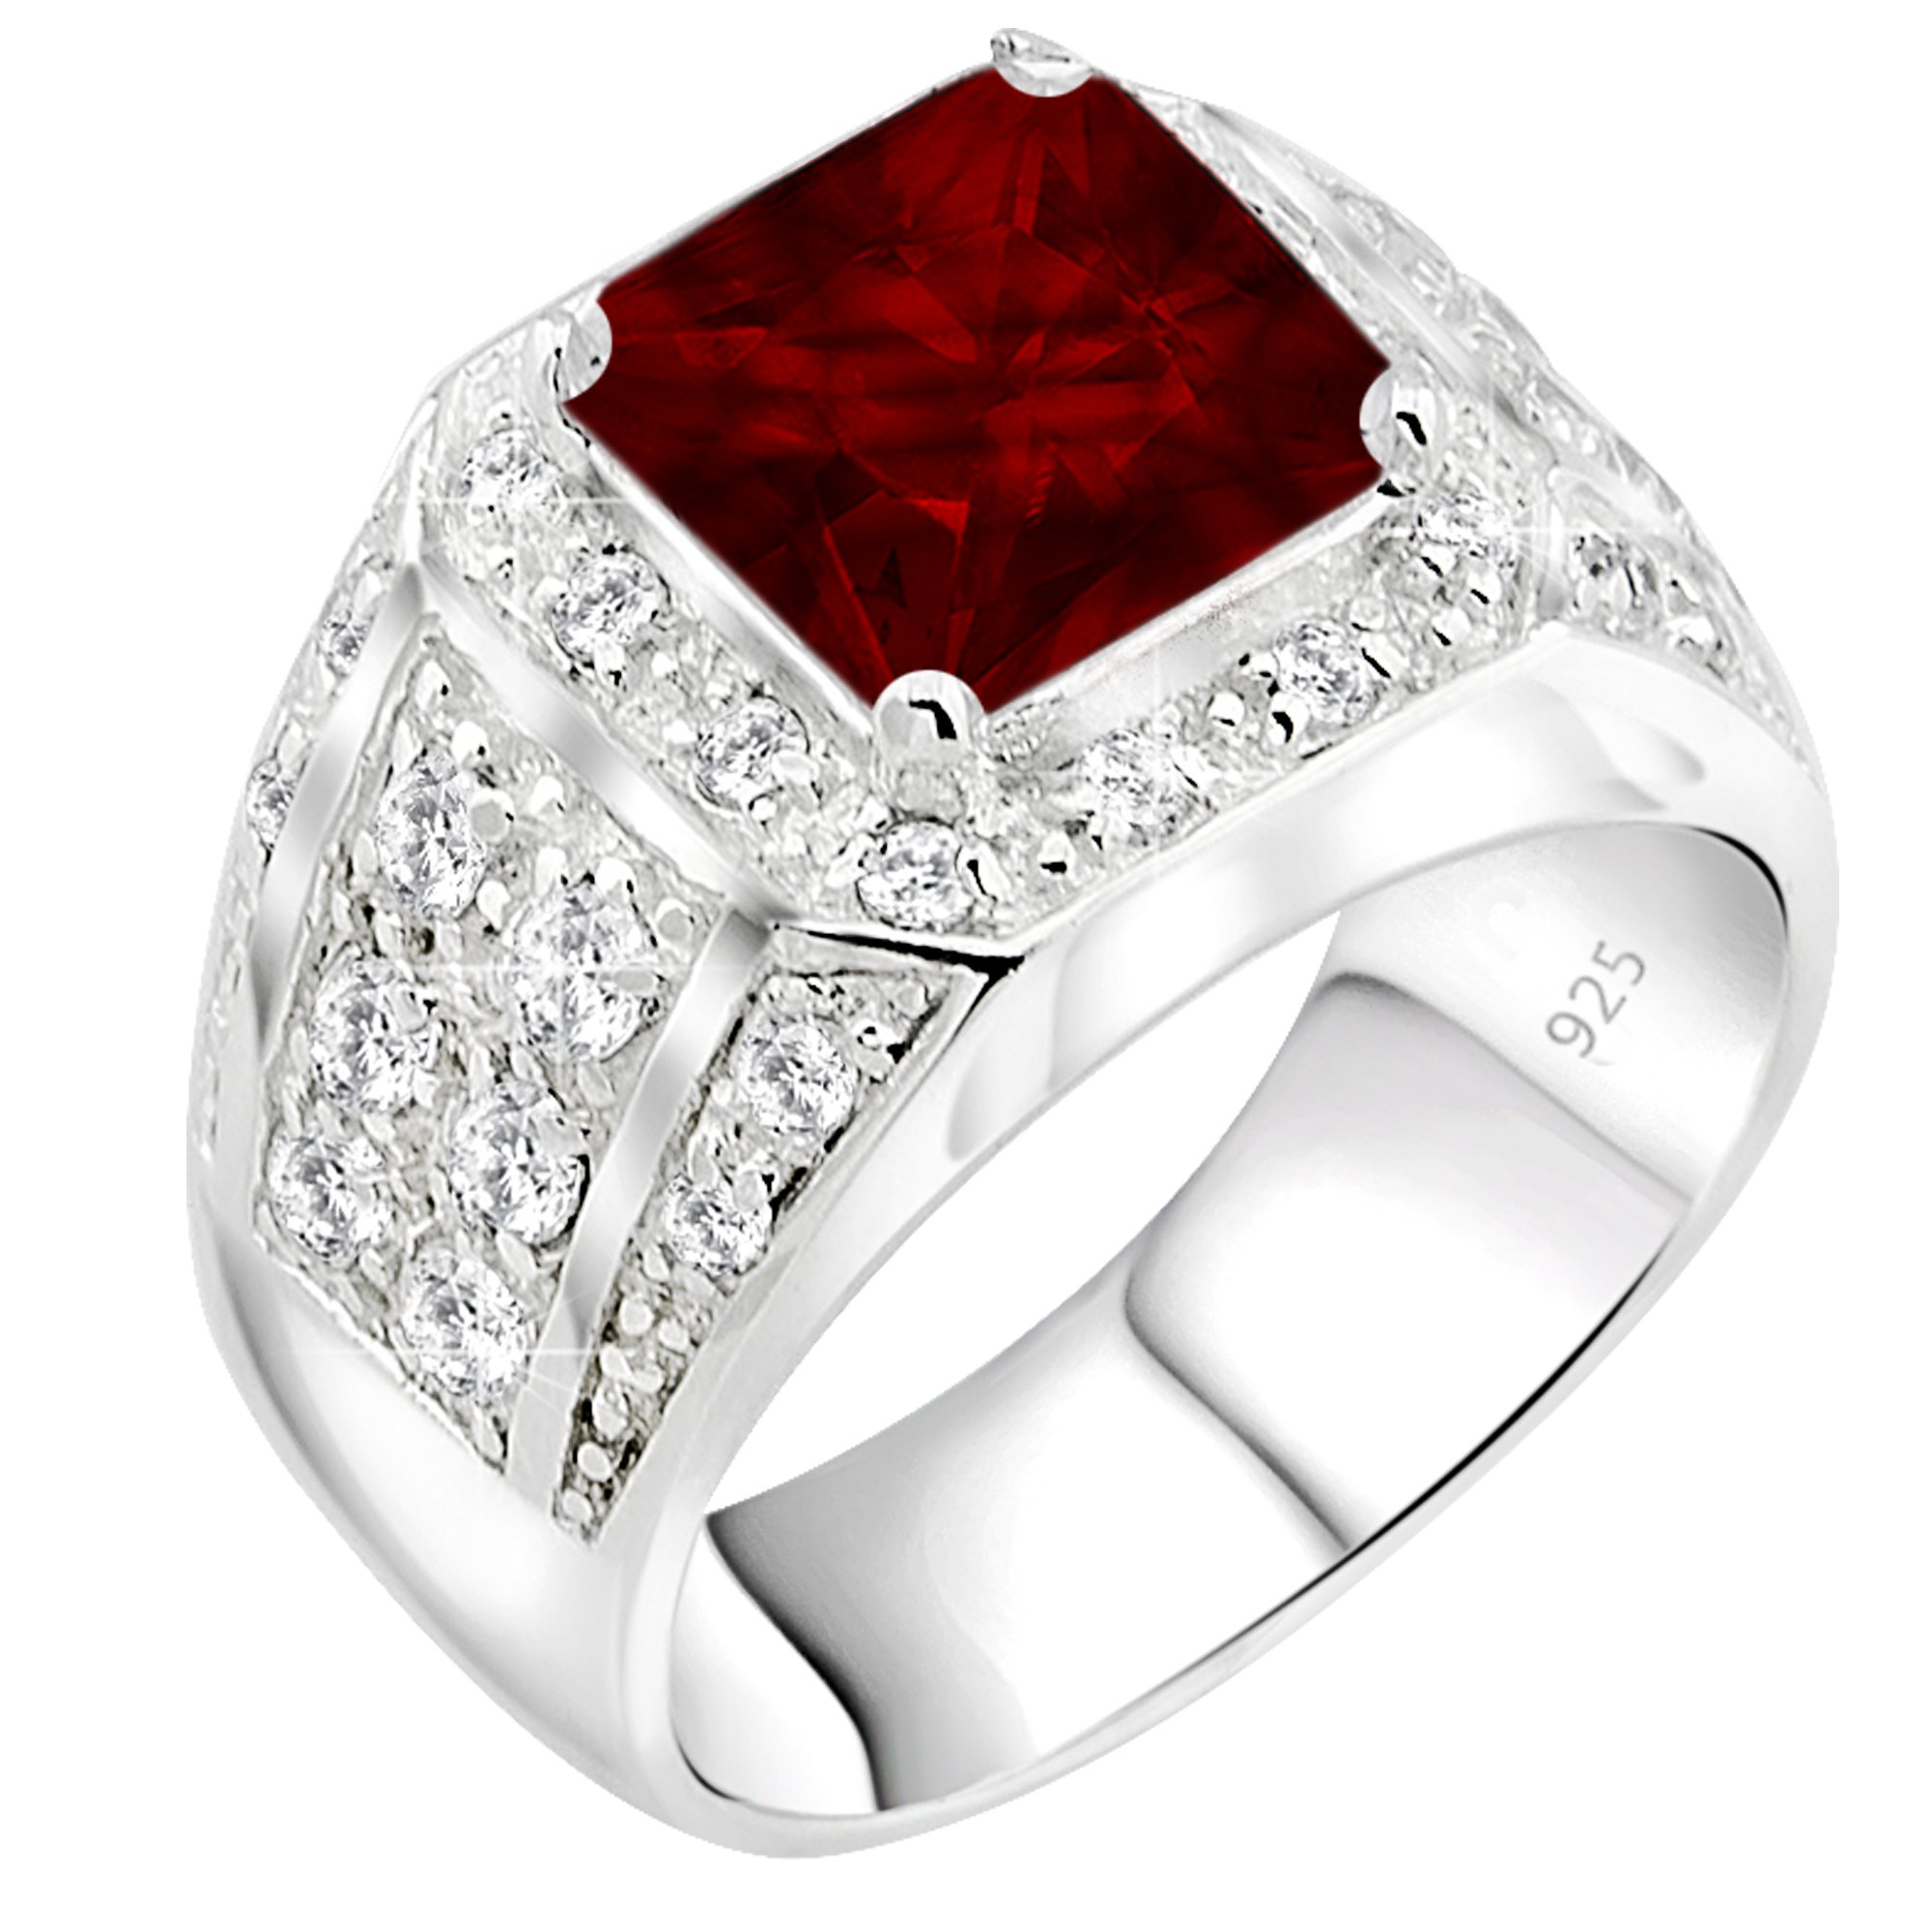 Men's Sterling Silver .925 Princess-Cut Ring Featuring a Synthetic Red Ruby Surrounded by 32 Fancy Round Prong-Set Cubic Zirconia Stones, Perfect for the Holidays (12) by Sterling Manufacturers (Image #1)